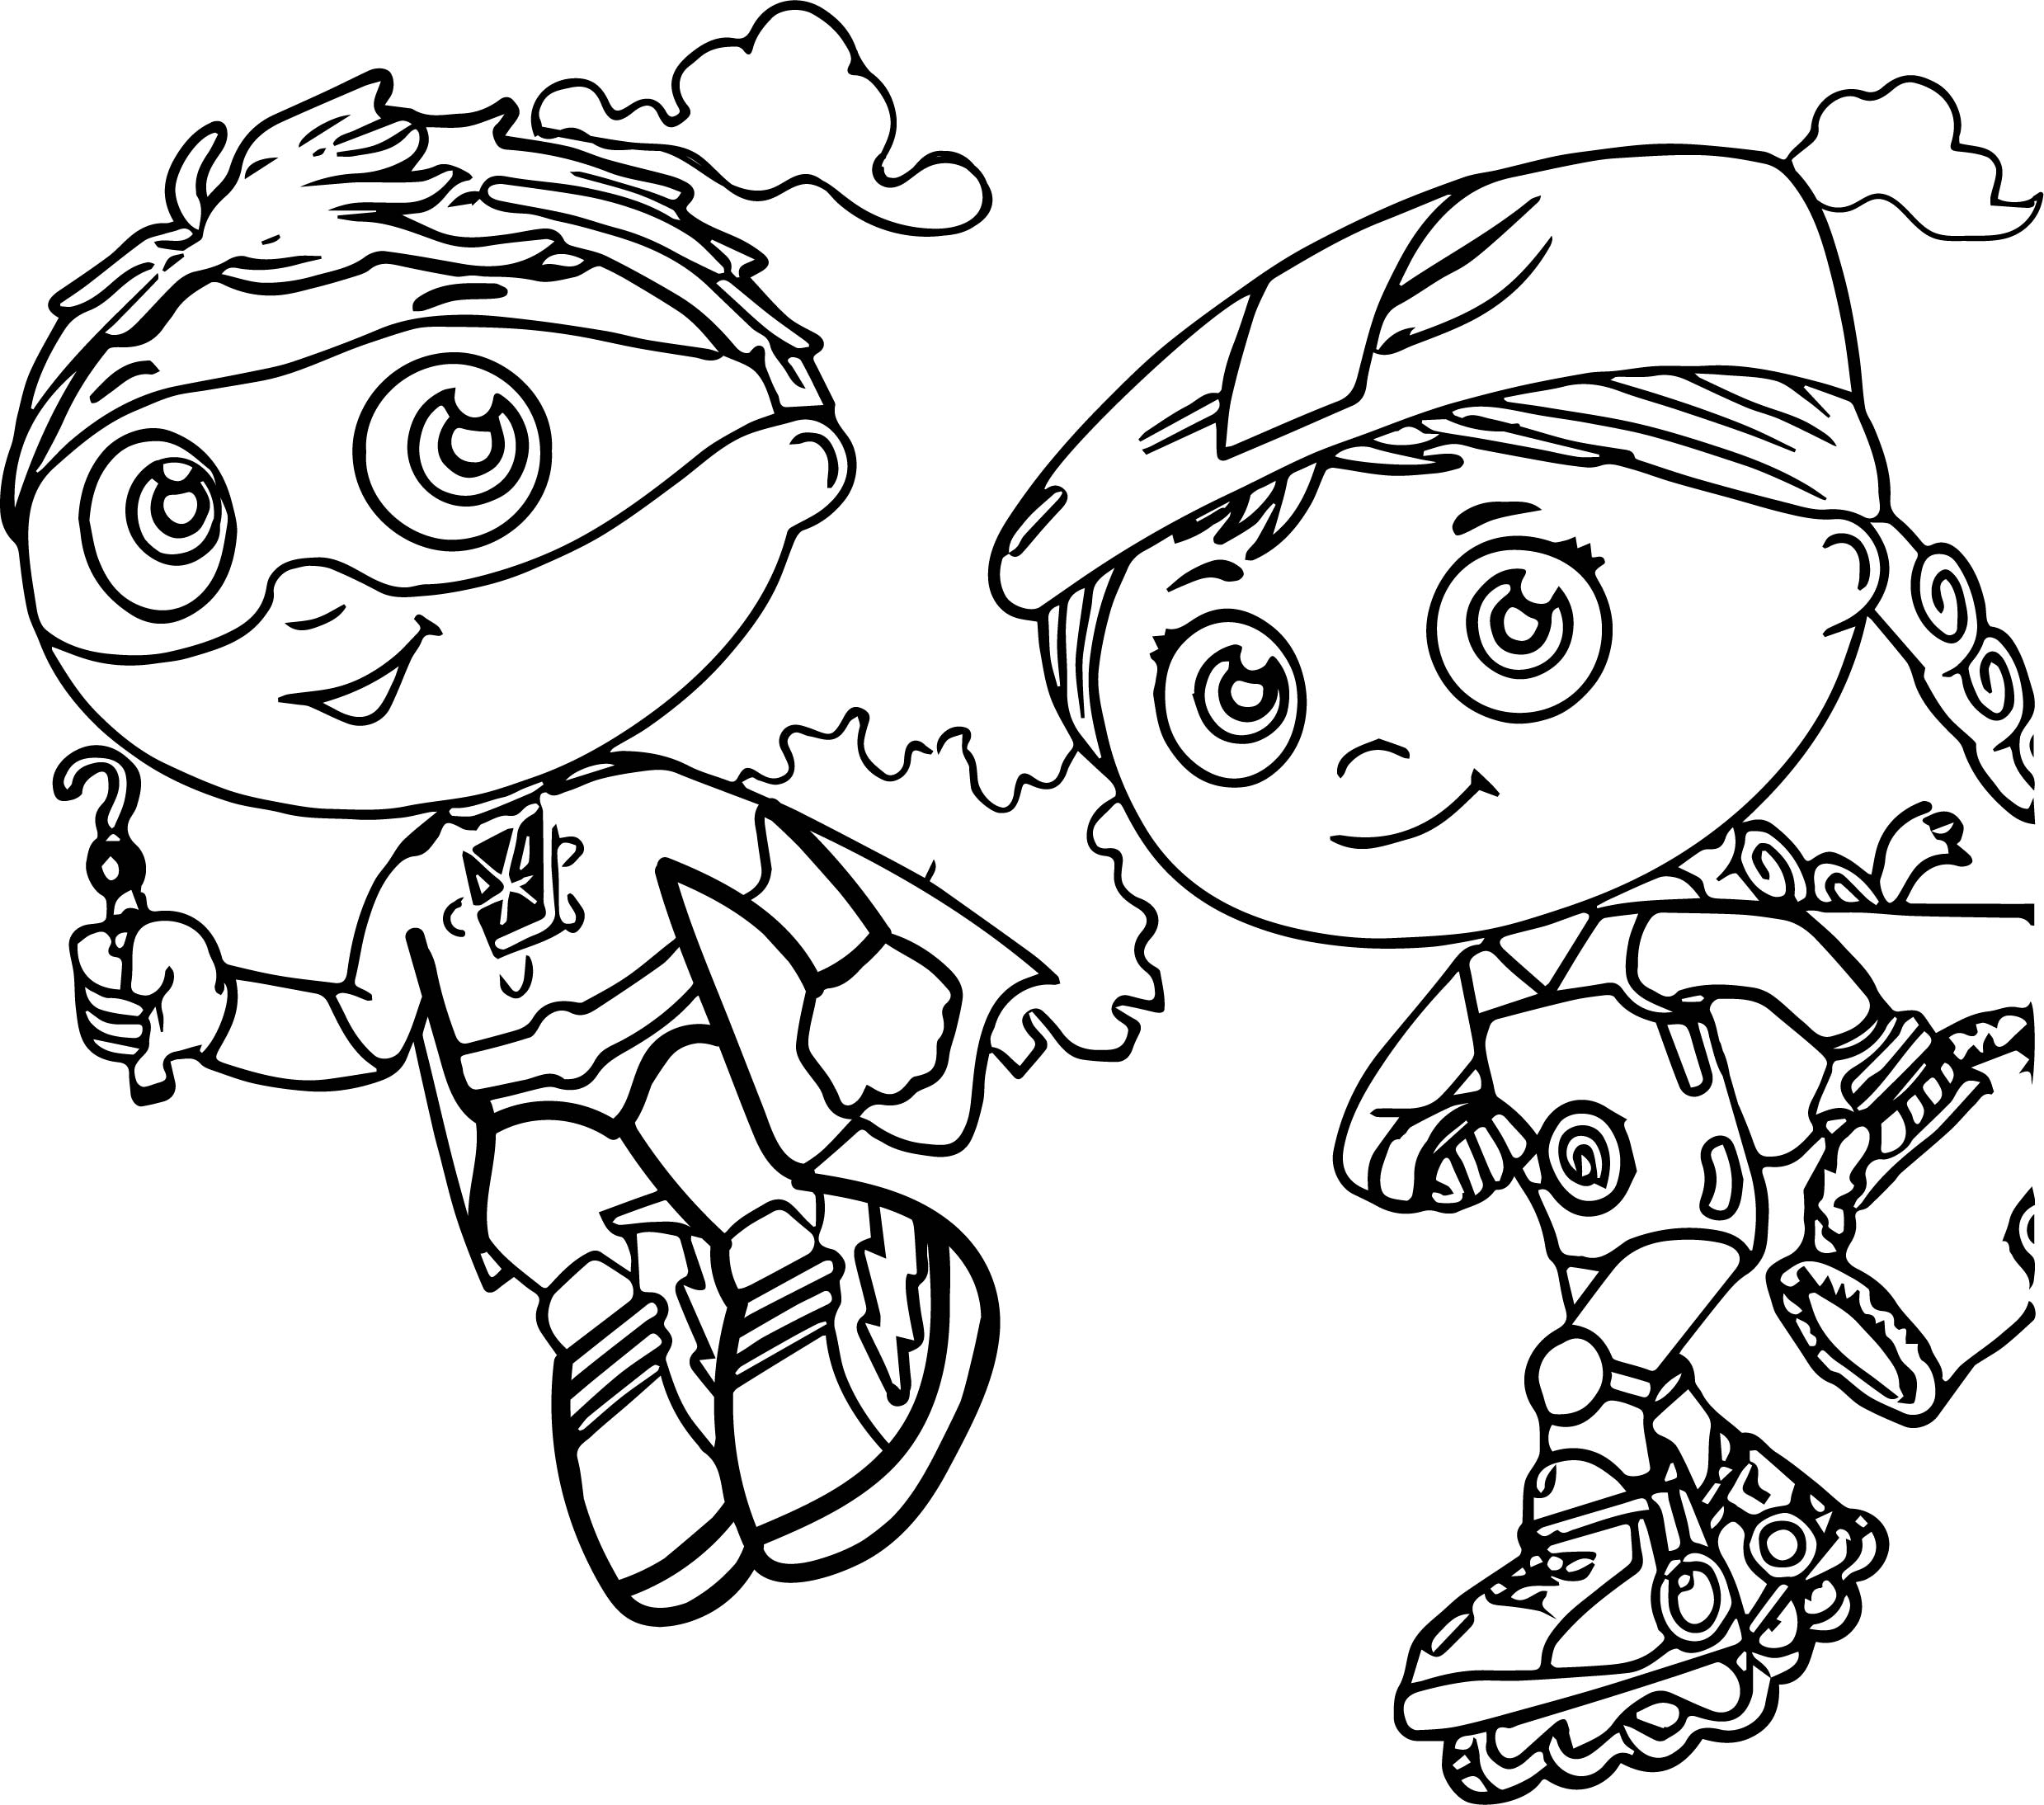 pictures coloring pages - super why coloring pages best coloring pages for kids